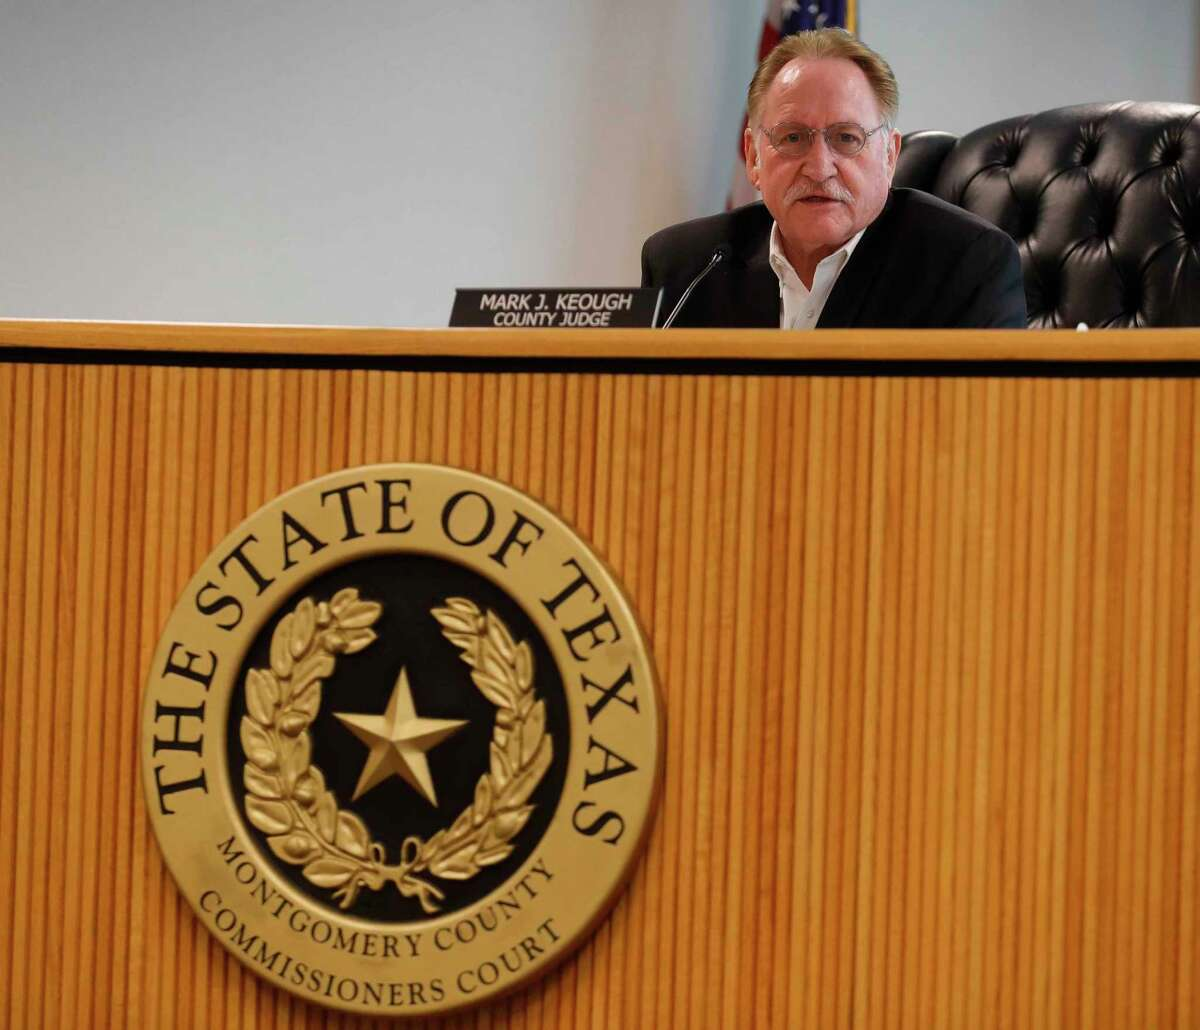 Montgomery County Judge Mark Keough is seen during a Montgomery County Commissioners Court meeting at the Alan B. Sadler Commissioners Court building on Jan. 12, 2021, in Conroe.